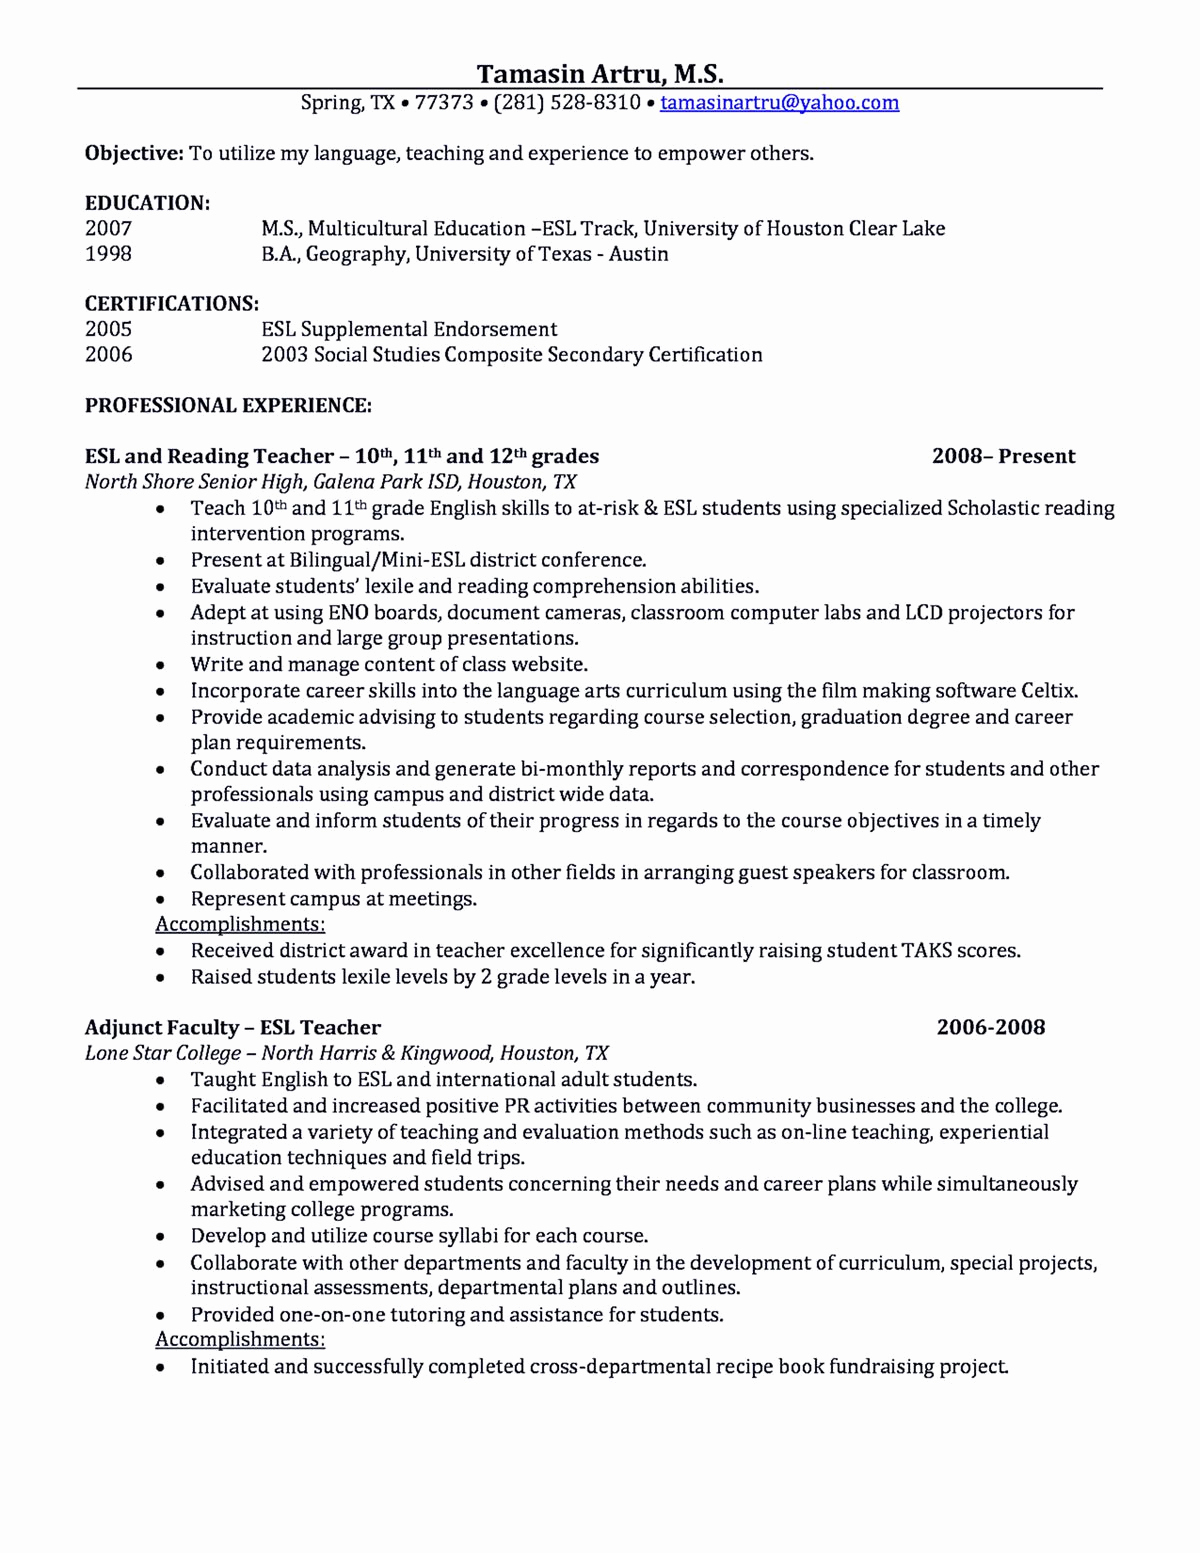 Cover Letter Latex Template Awesome Academic Cv Template Latex Academic Resume Sample Shows